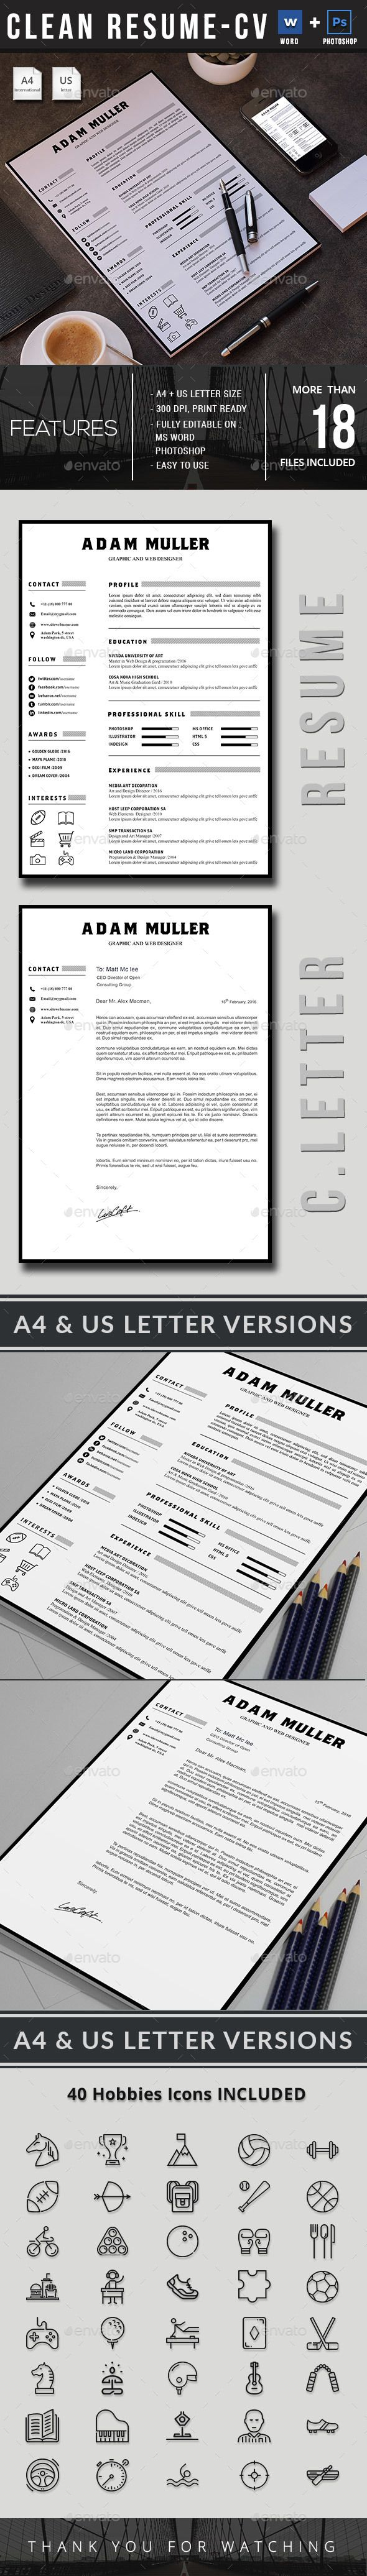 maintenance resume word best images about resume on pinterest template creative resume preview pdf with icu